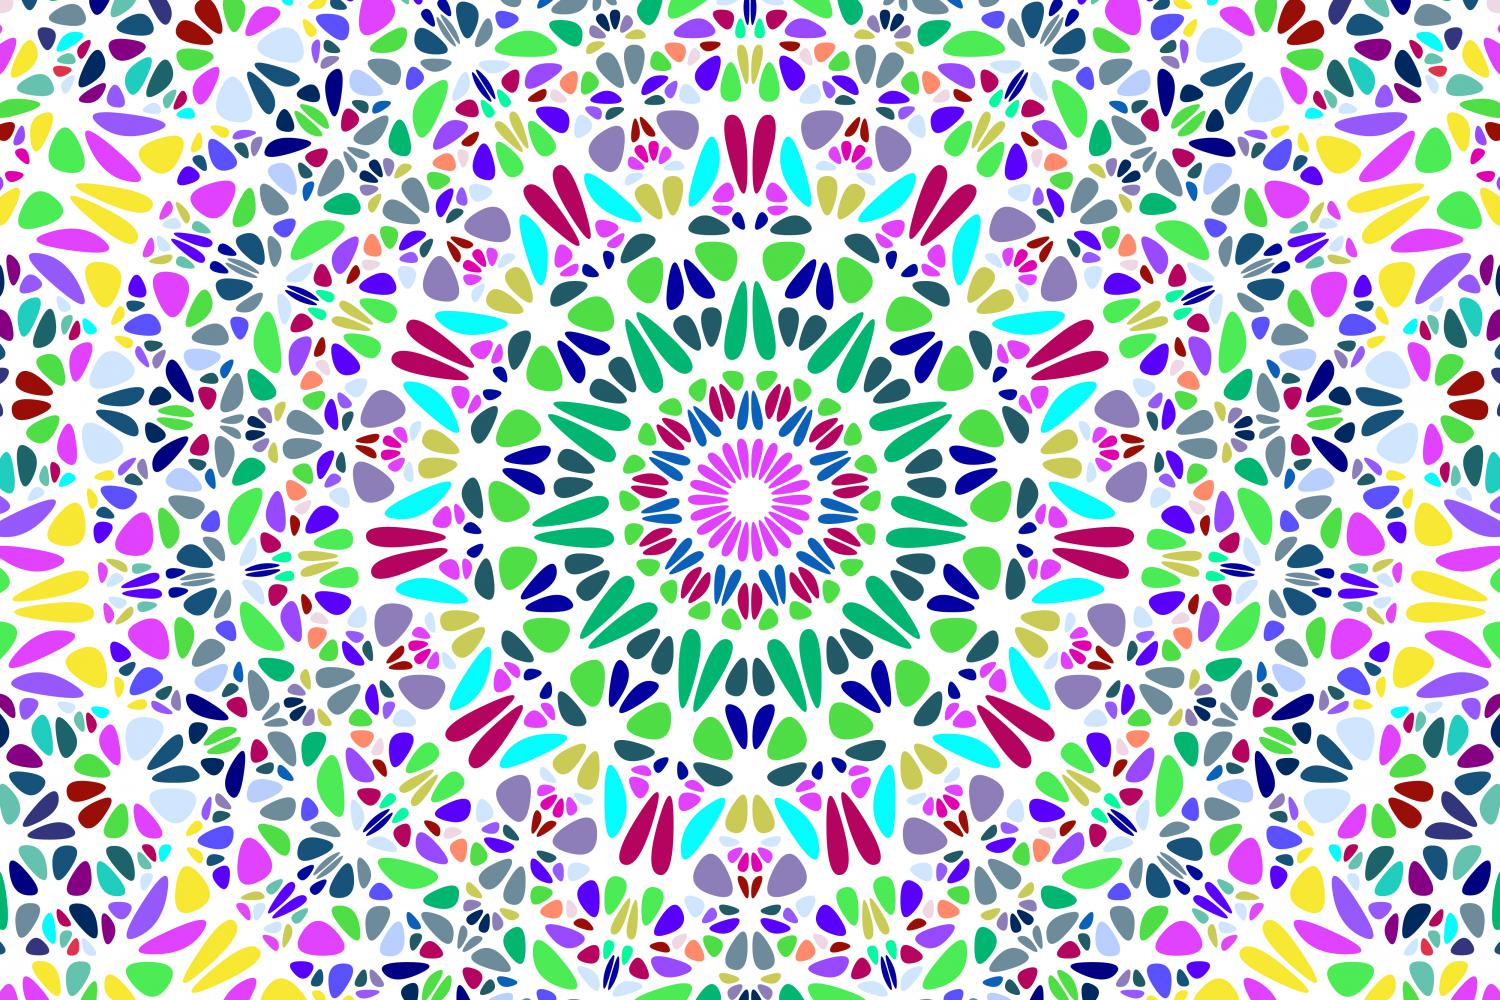 48 Floral Mandala Backgrounds example image 15